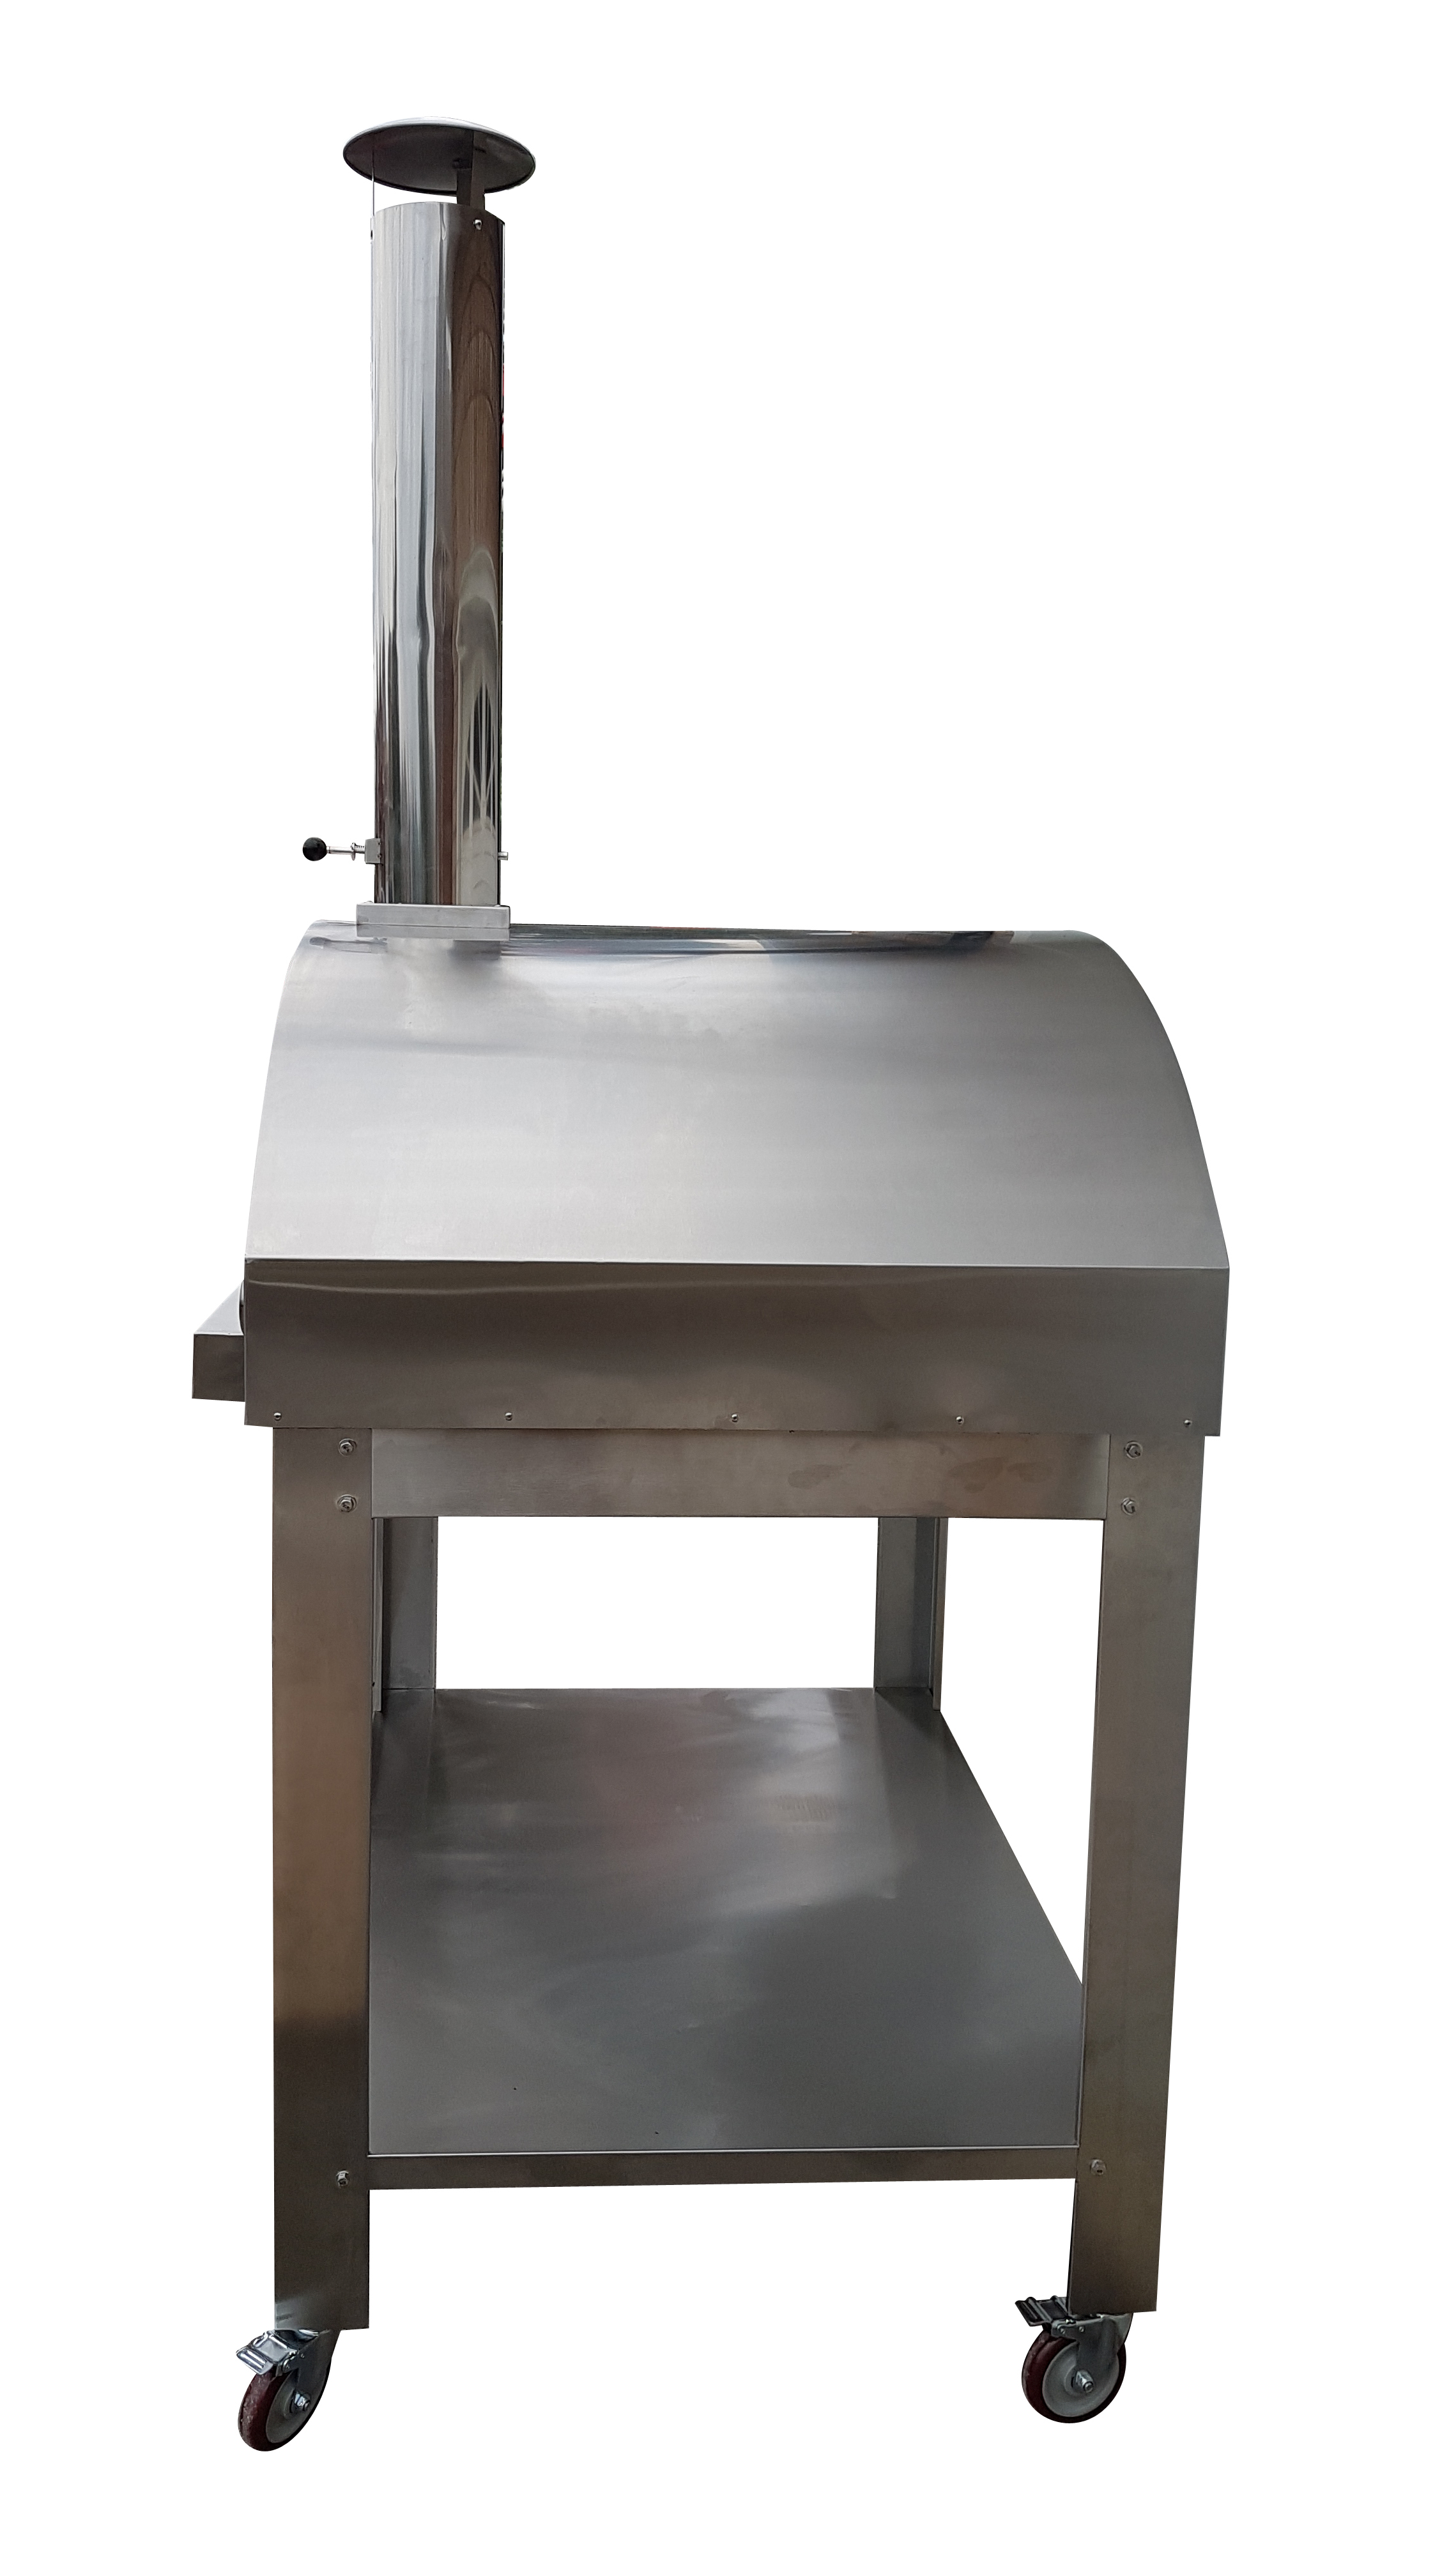 National Home Show Special - Grosso Wood Oven - PRE ORDER ONLY ...